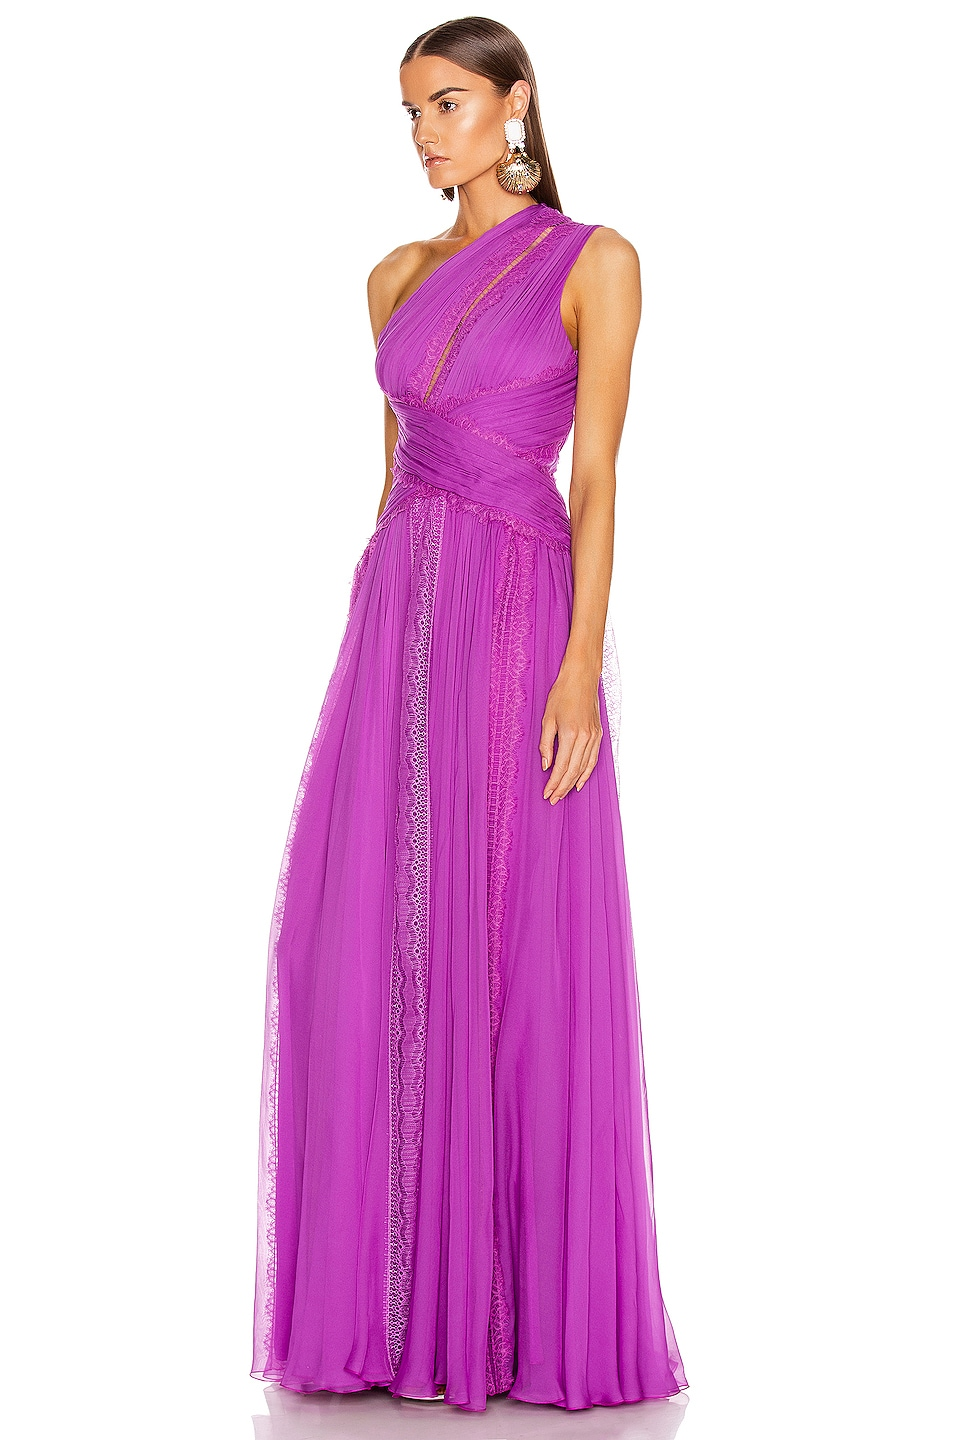 Image 3 of Zuhair Murad Silk Chiffon Long Dress in Hyacinth Violet